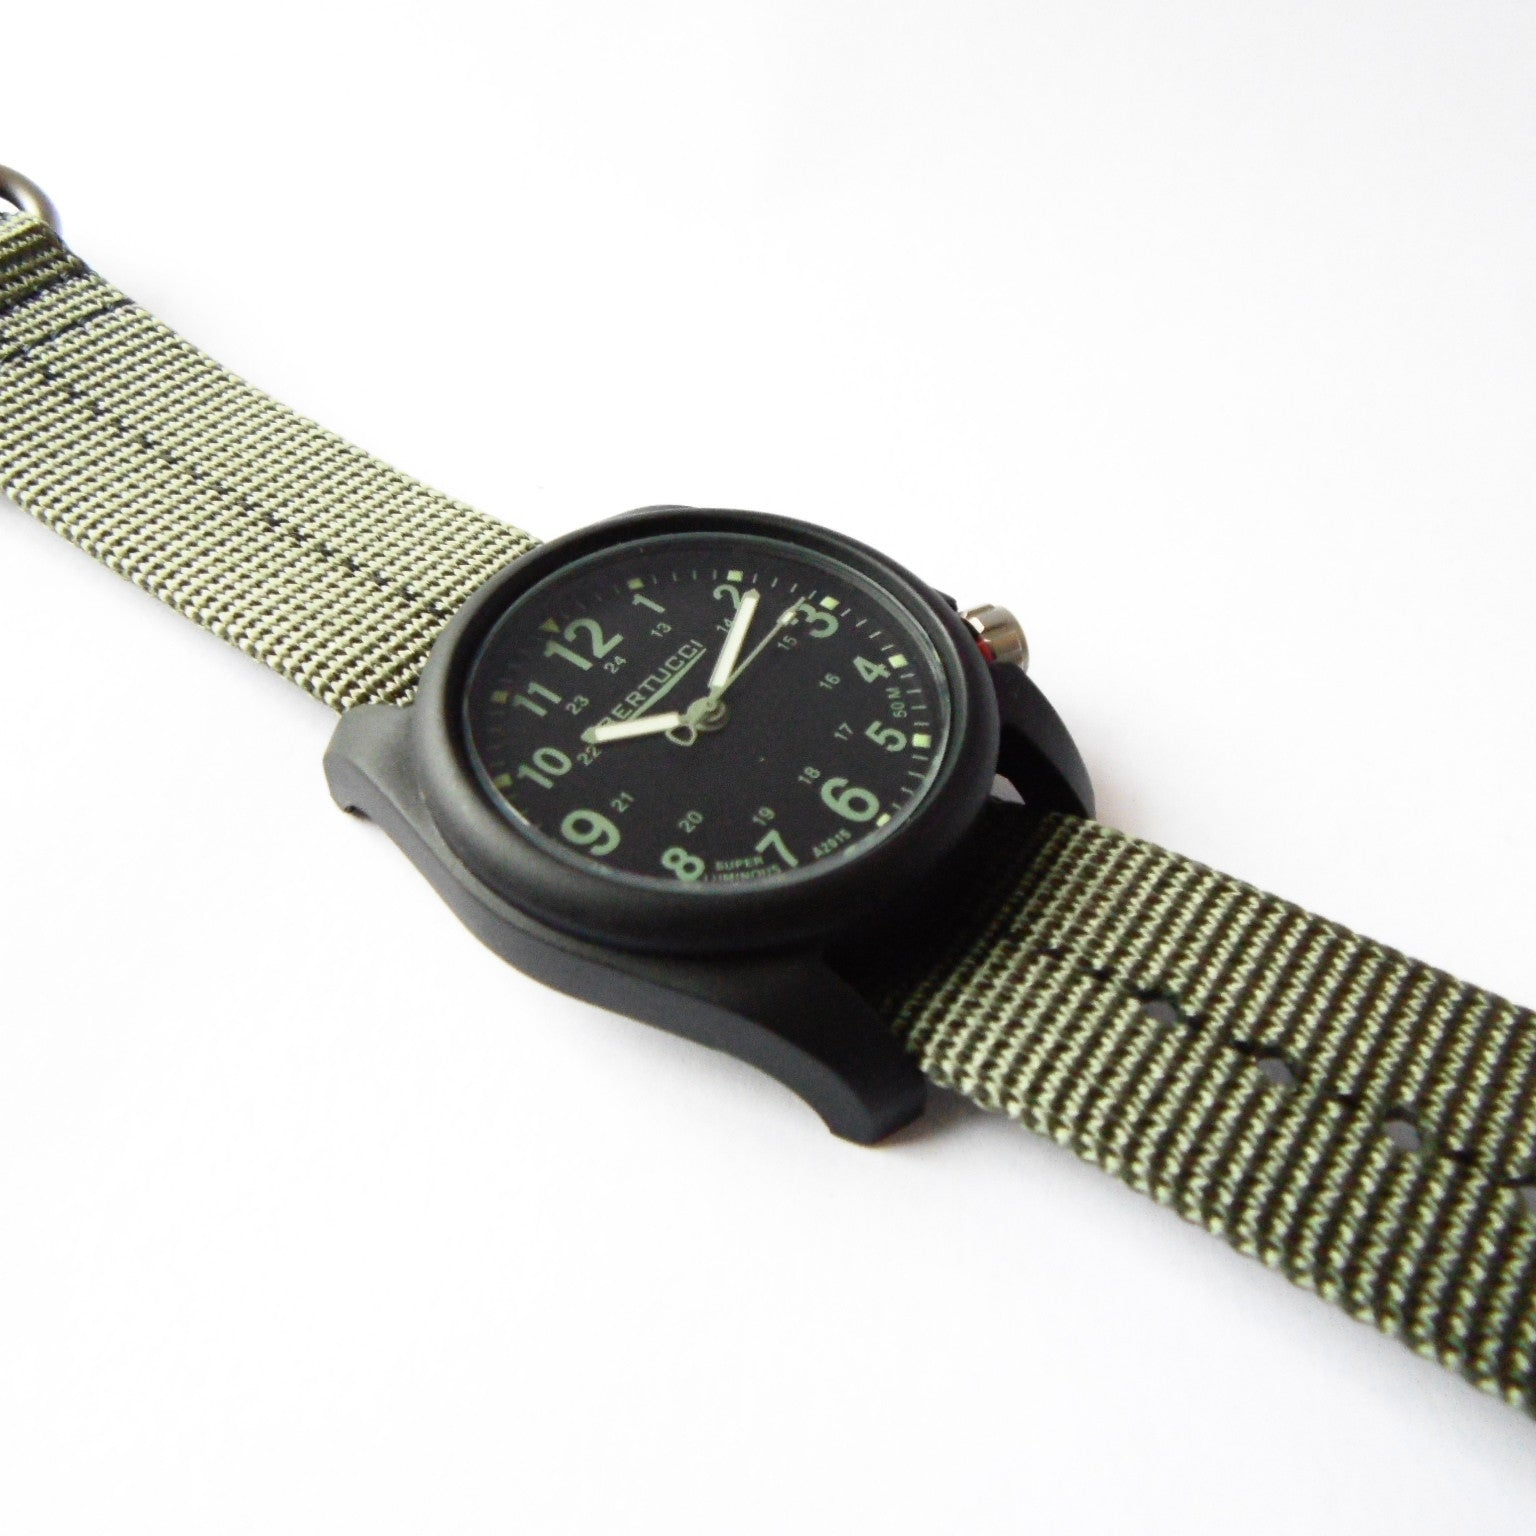 Bertucci DX3 Plus Field Resin Watch (Dash-Striped Drab Nylon Strap) 11040 - Watchfinder General - UK suppliers of Russian Vostok Parnis Watches MWC G10  - 2